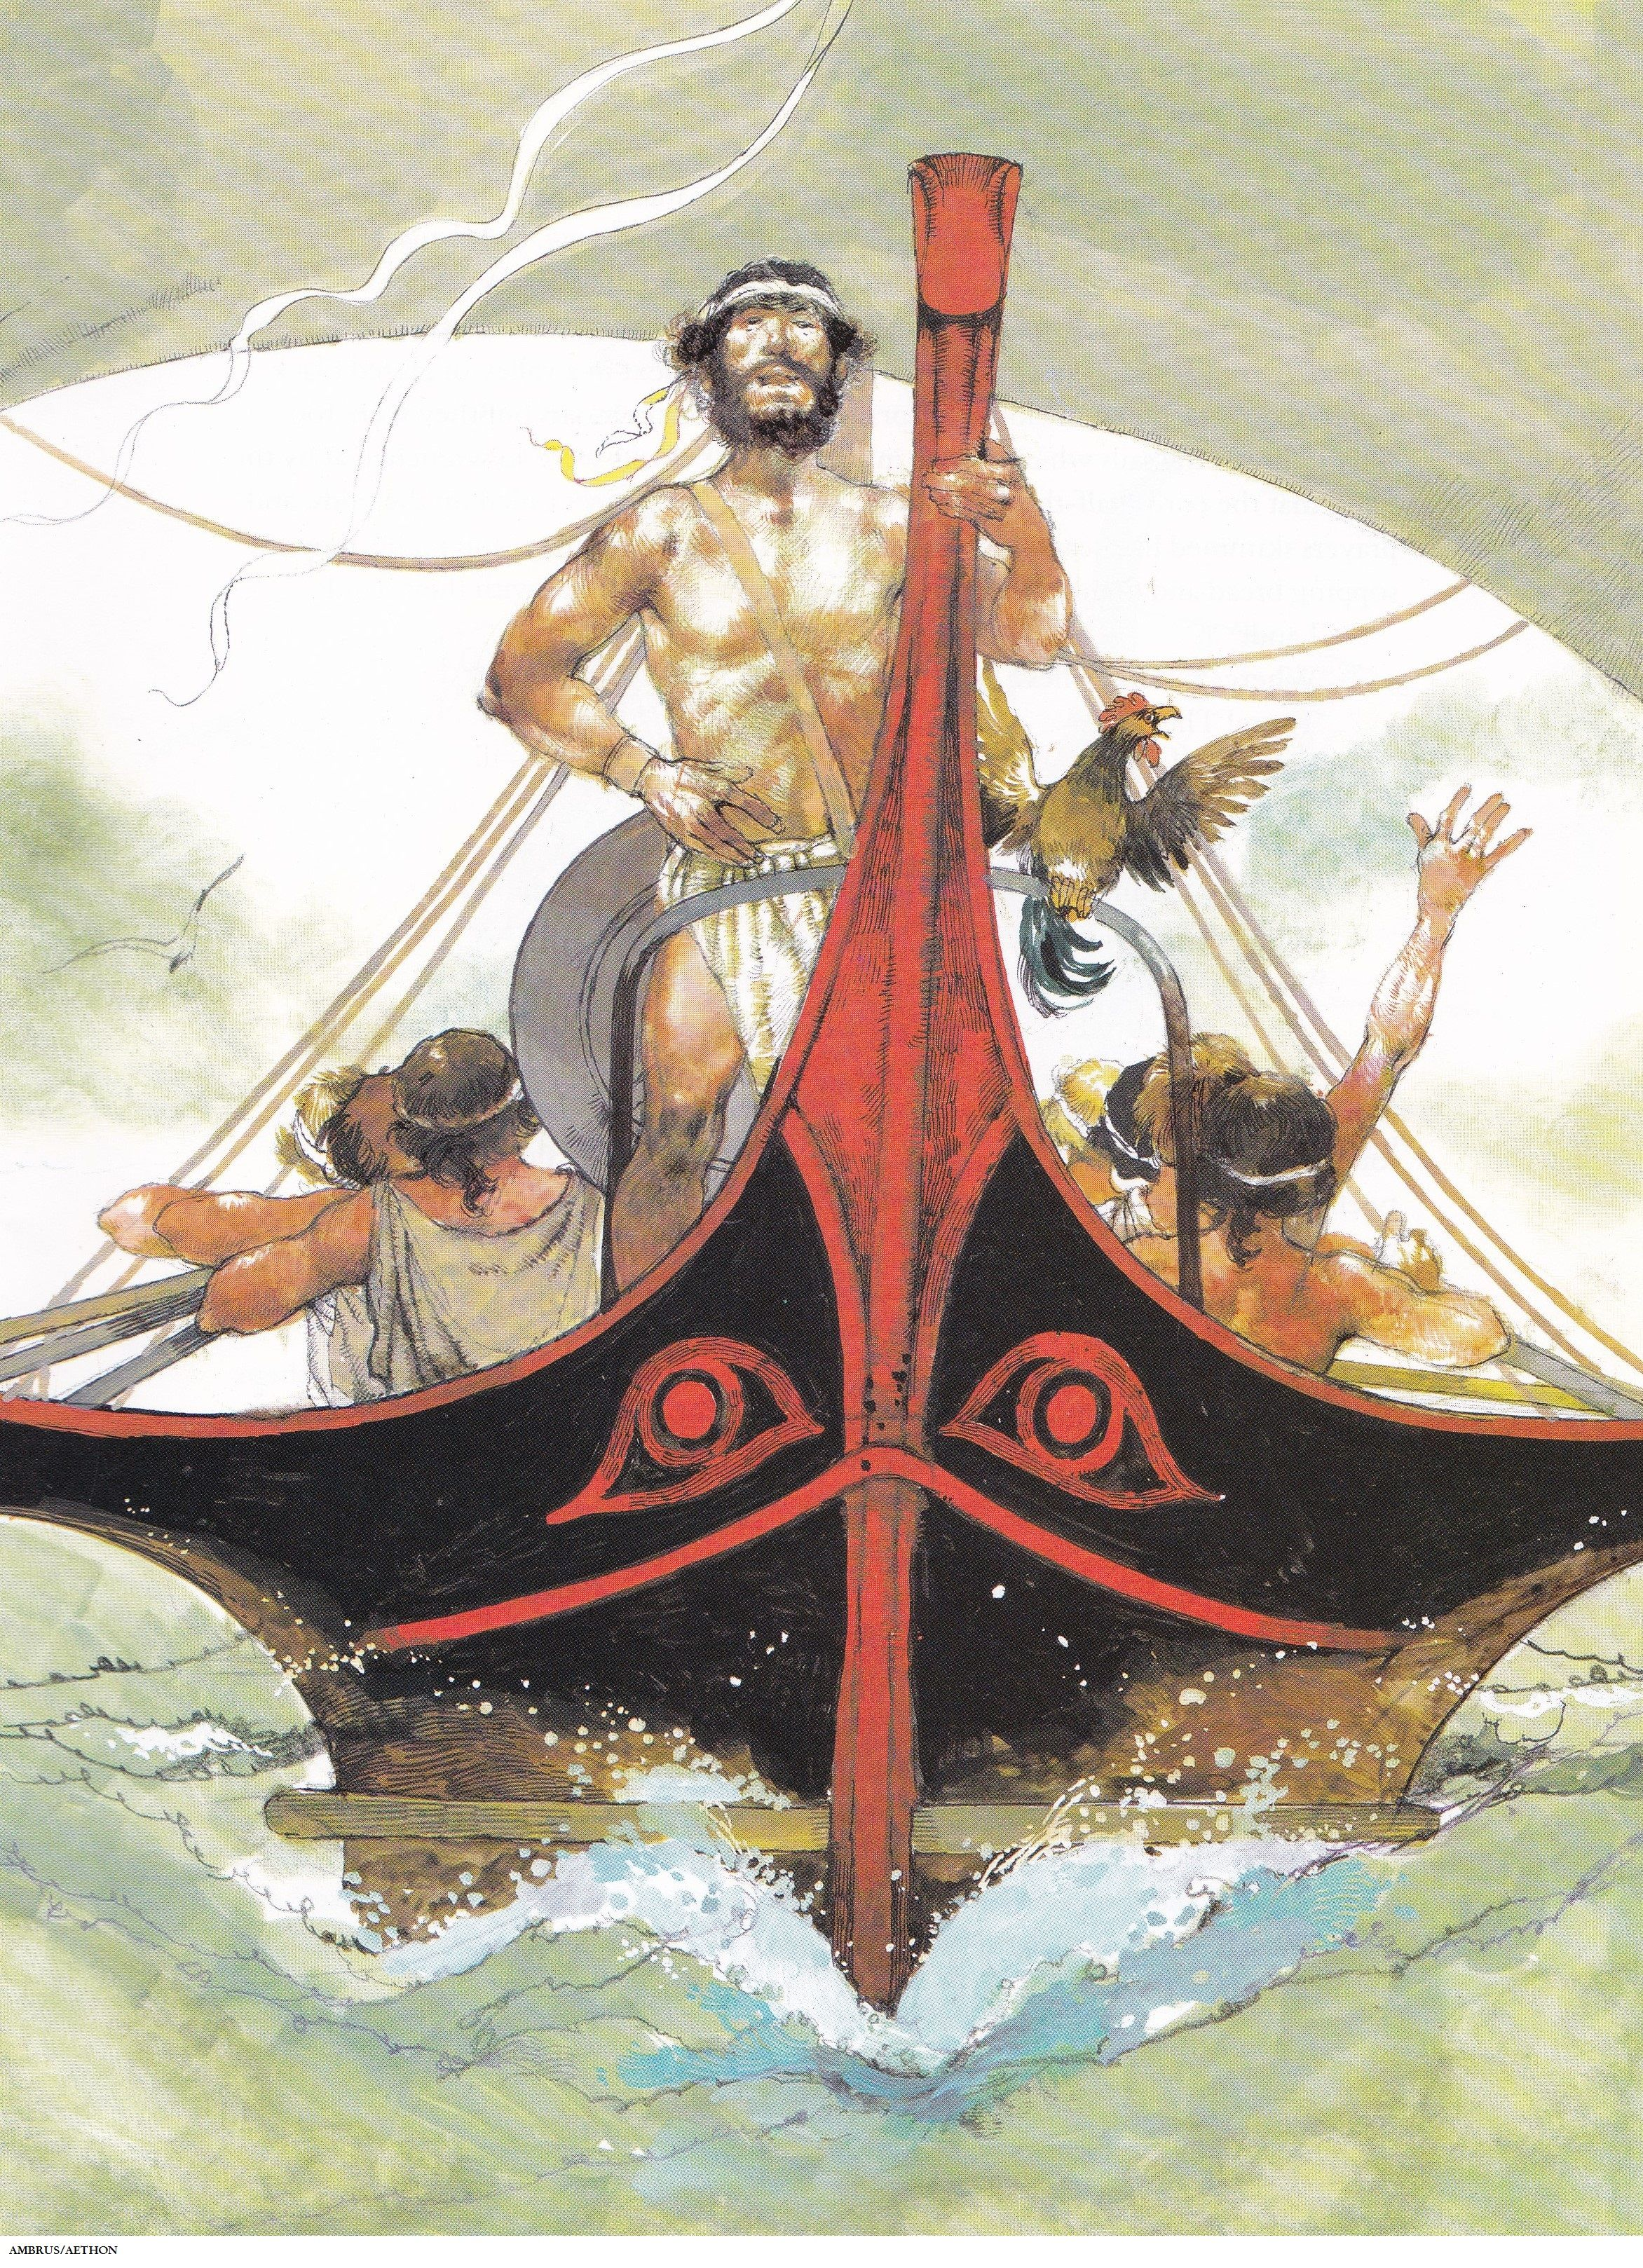 heroic odysseus Odysseus may not appear heroic to a modern reader he frequently tells lies he's a married man who sleeps with goddesses he fails to get even one of his men safely home to ithaka.